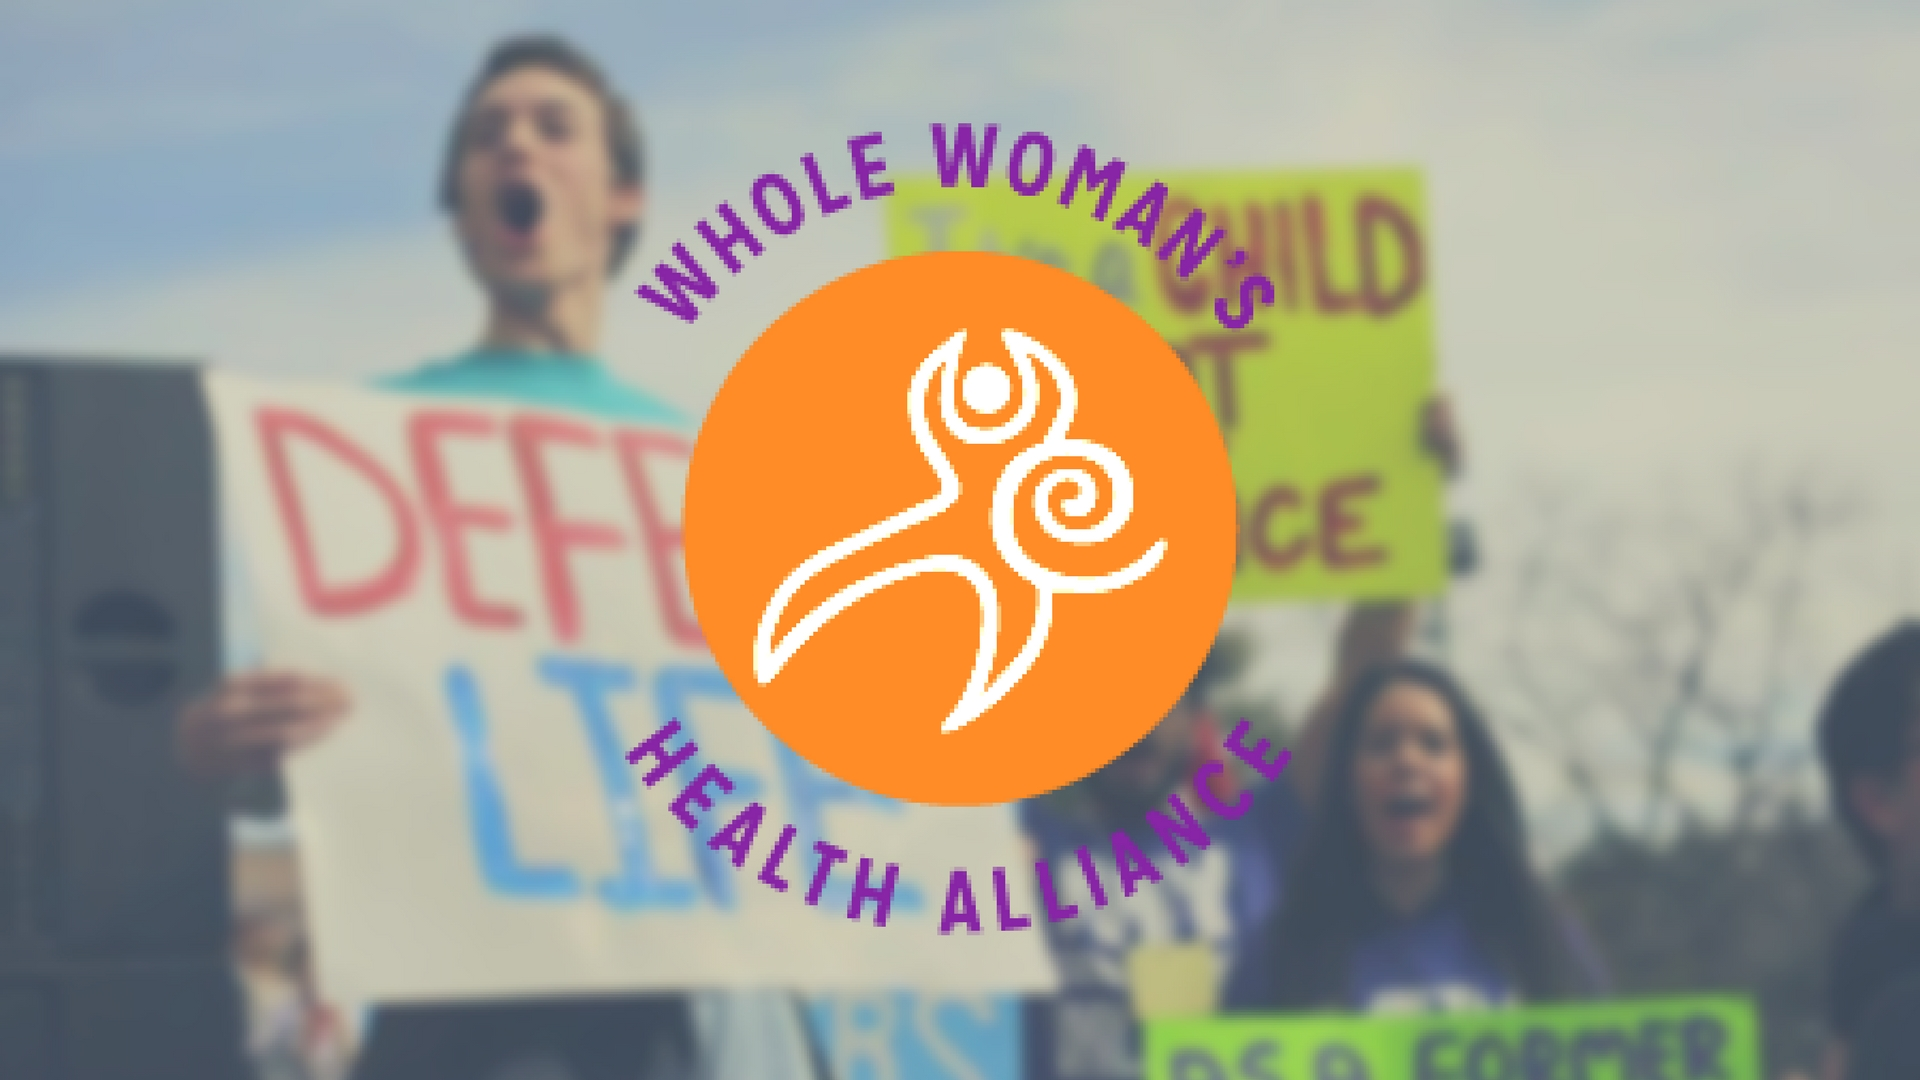 Whole Woman's Health Alliance pro life anti abortion_289374